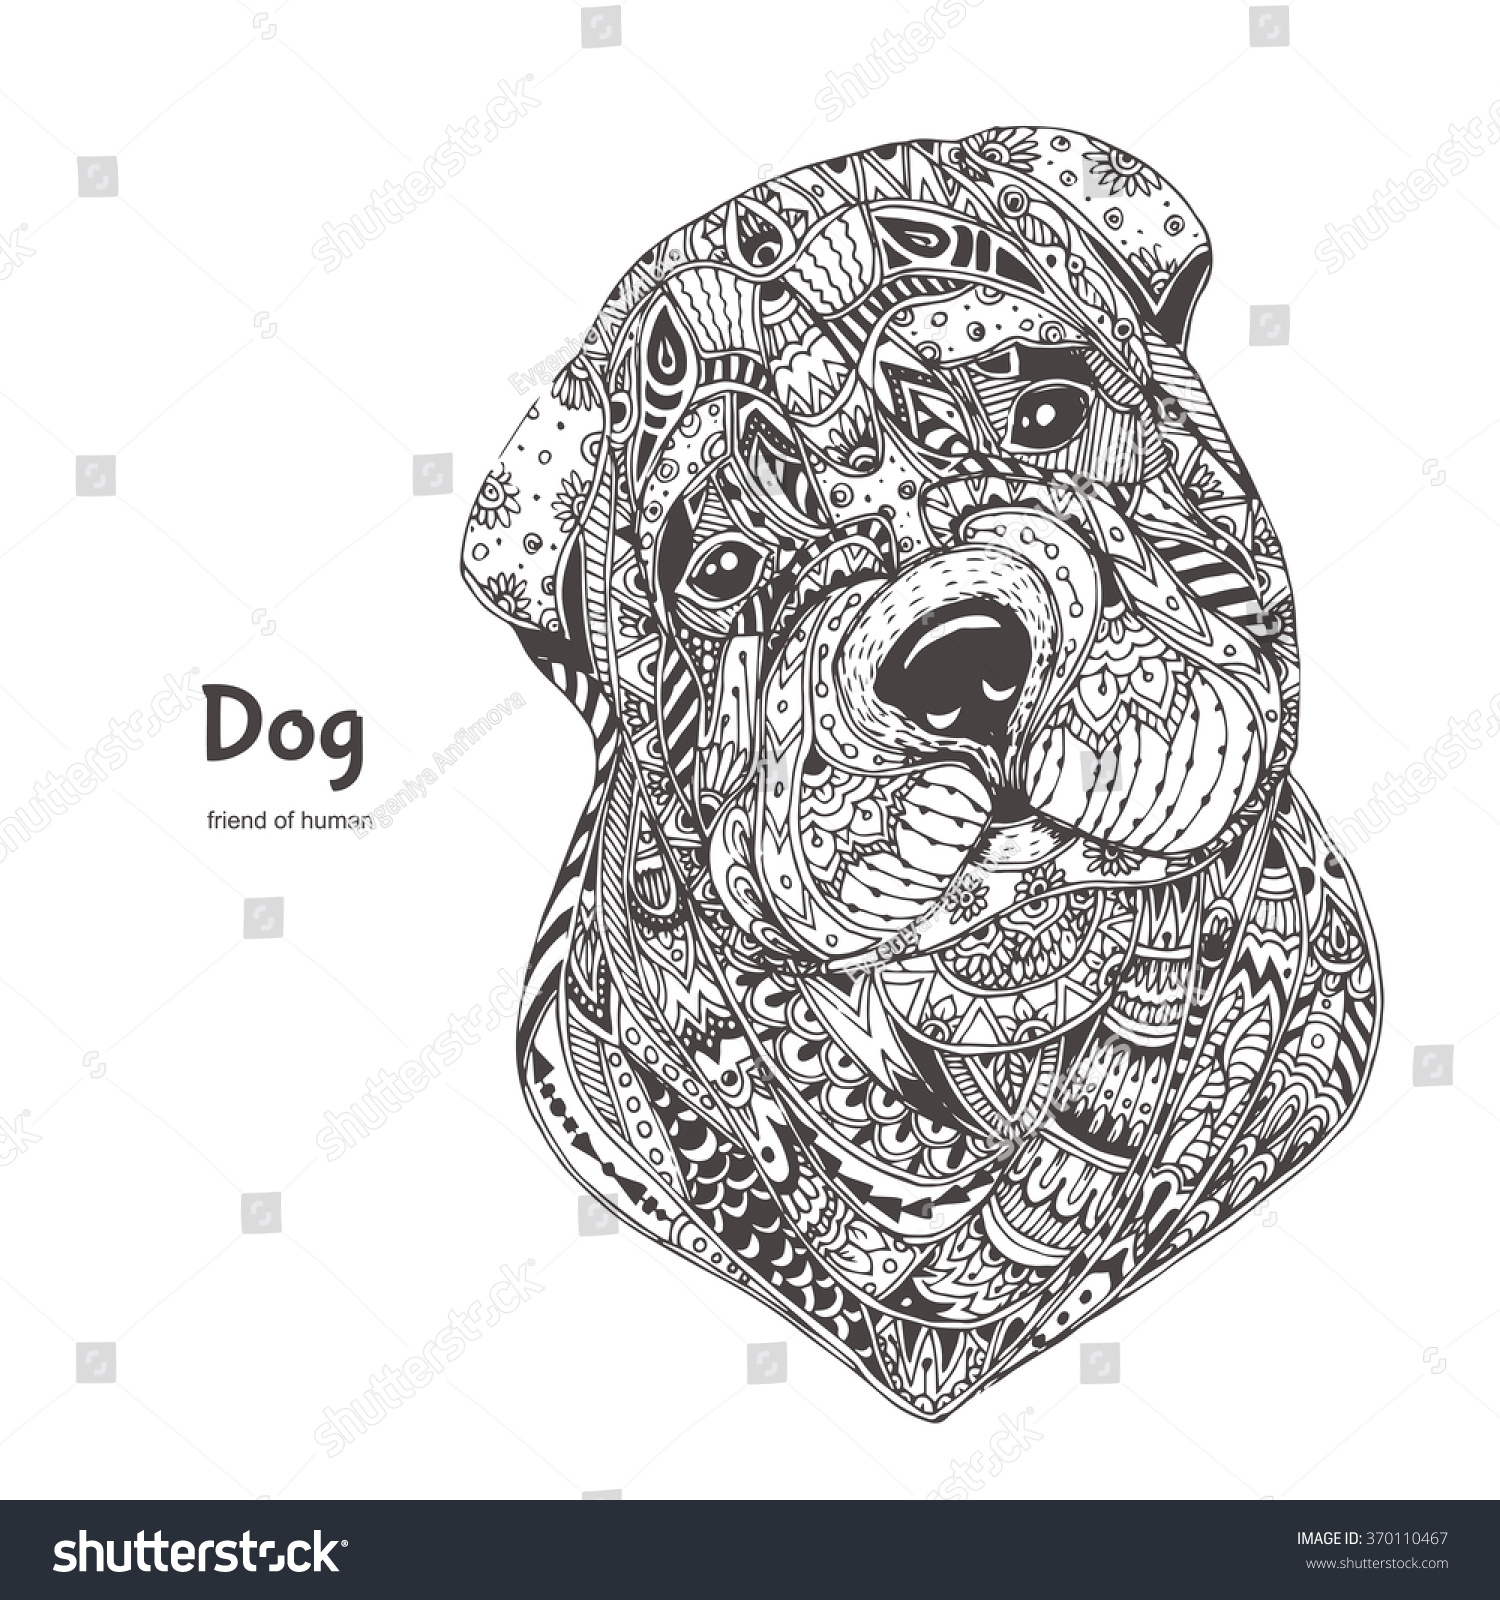 handdrawn dog ethnic floral doodle pattern stock vector 370110467